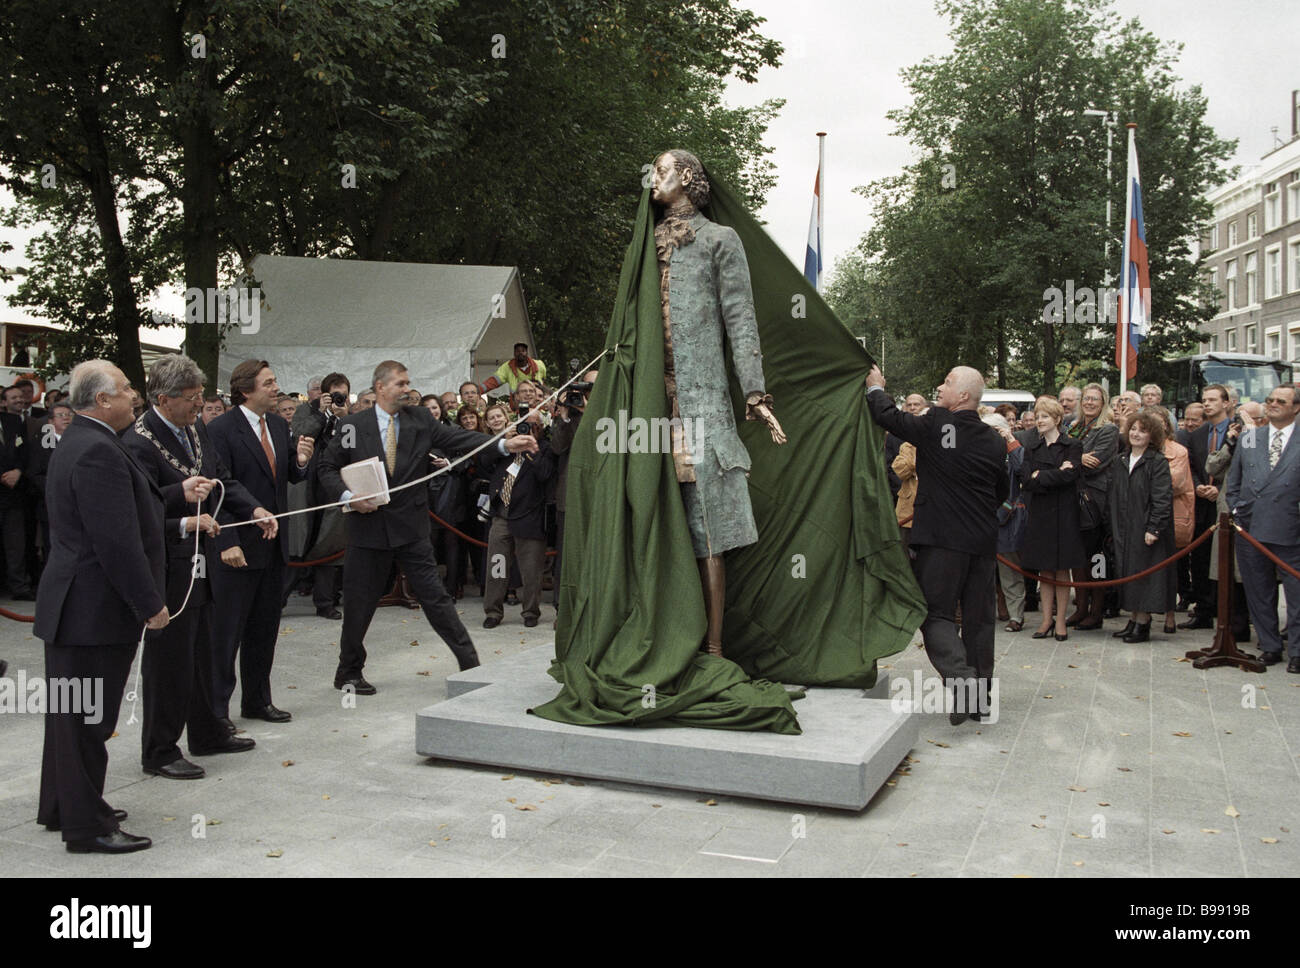 Opening of the monument to the Russian Emperor Peter the Great in Rotterdam - Stock Image